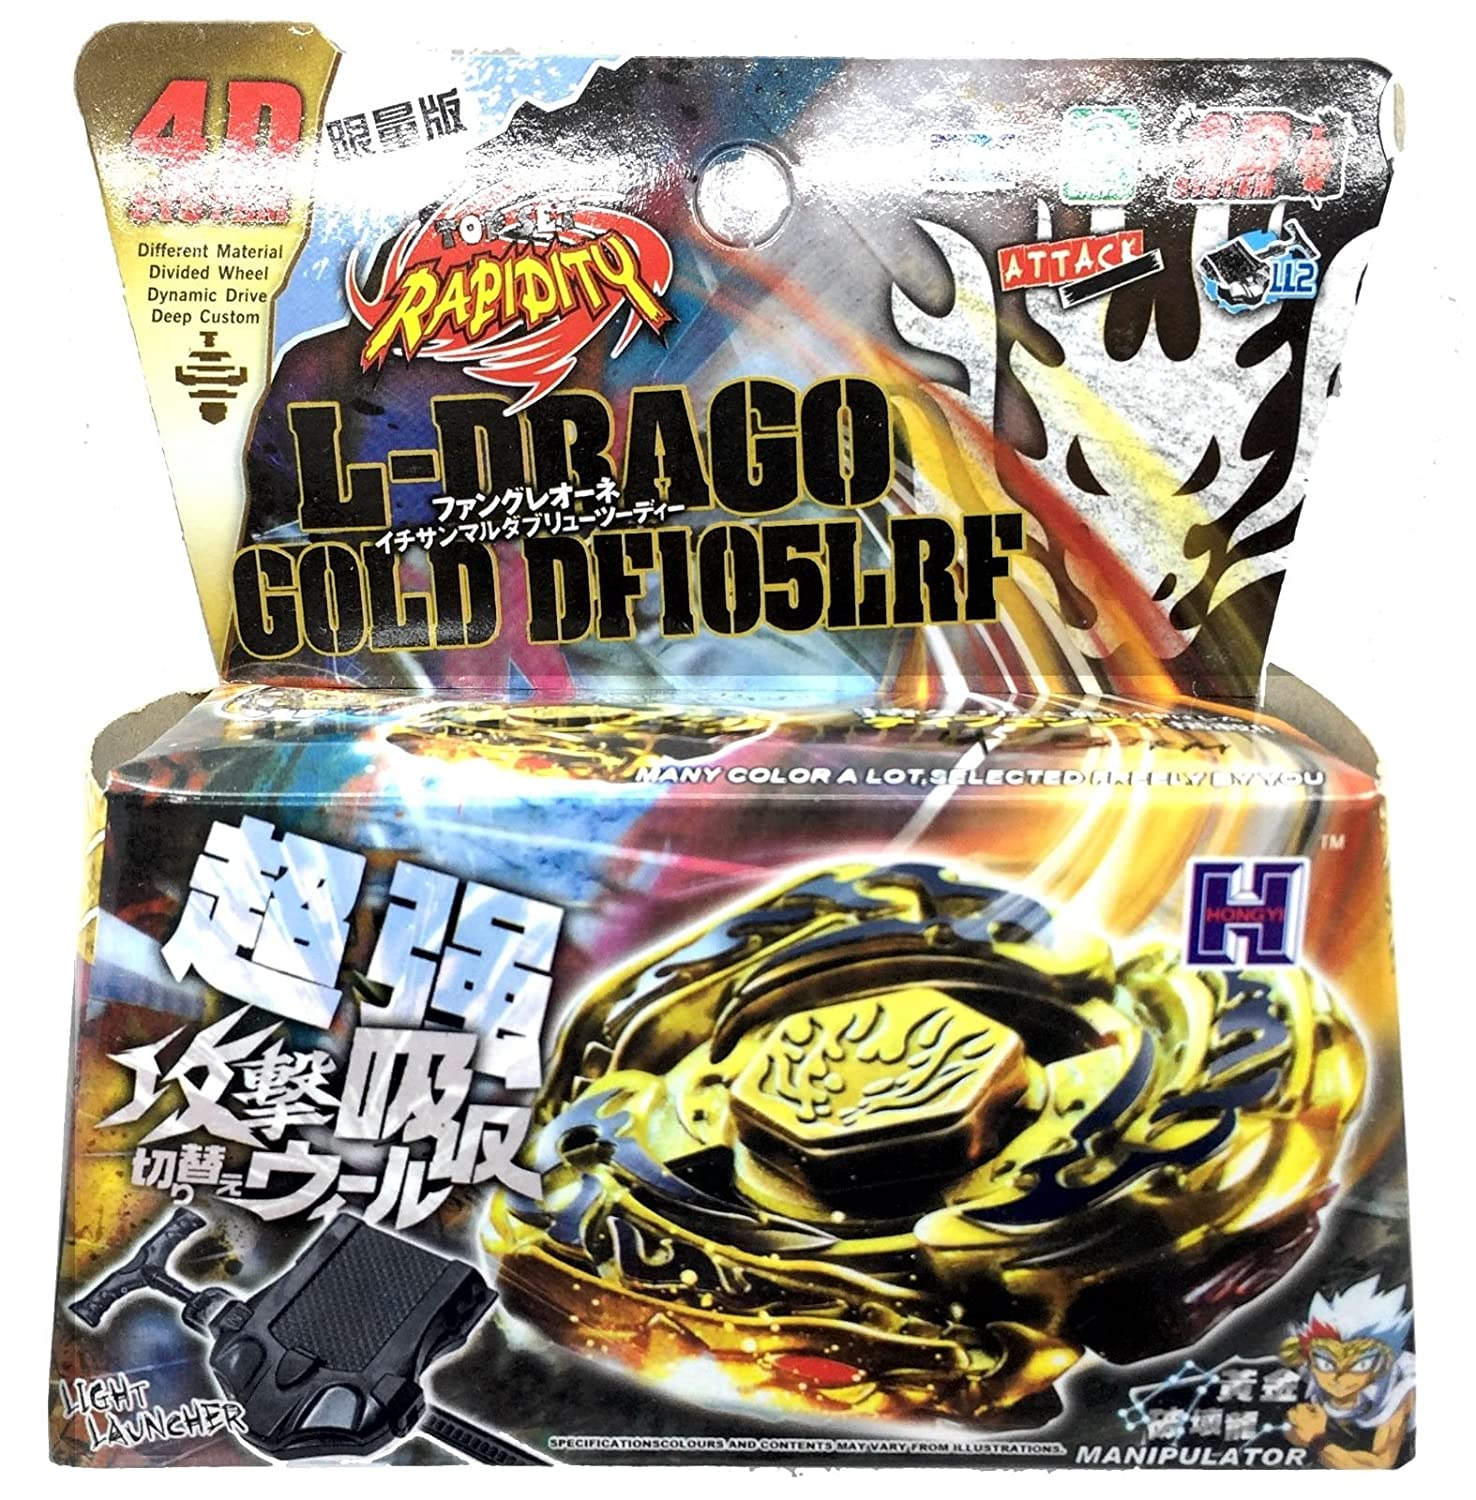 L-Drago Gold Beyblade 4D Top Metal Fusion Fight Master New + Launcher Thailand